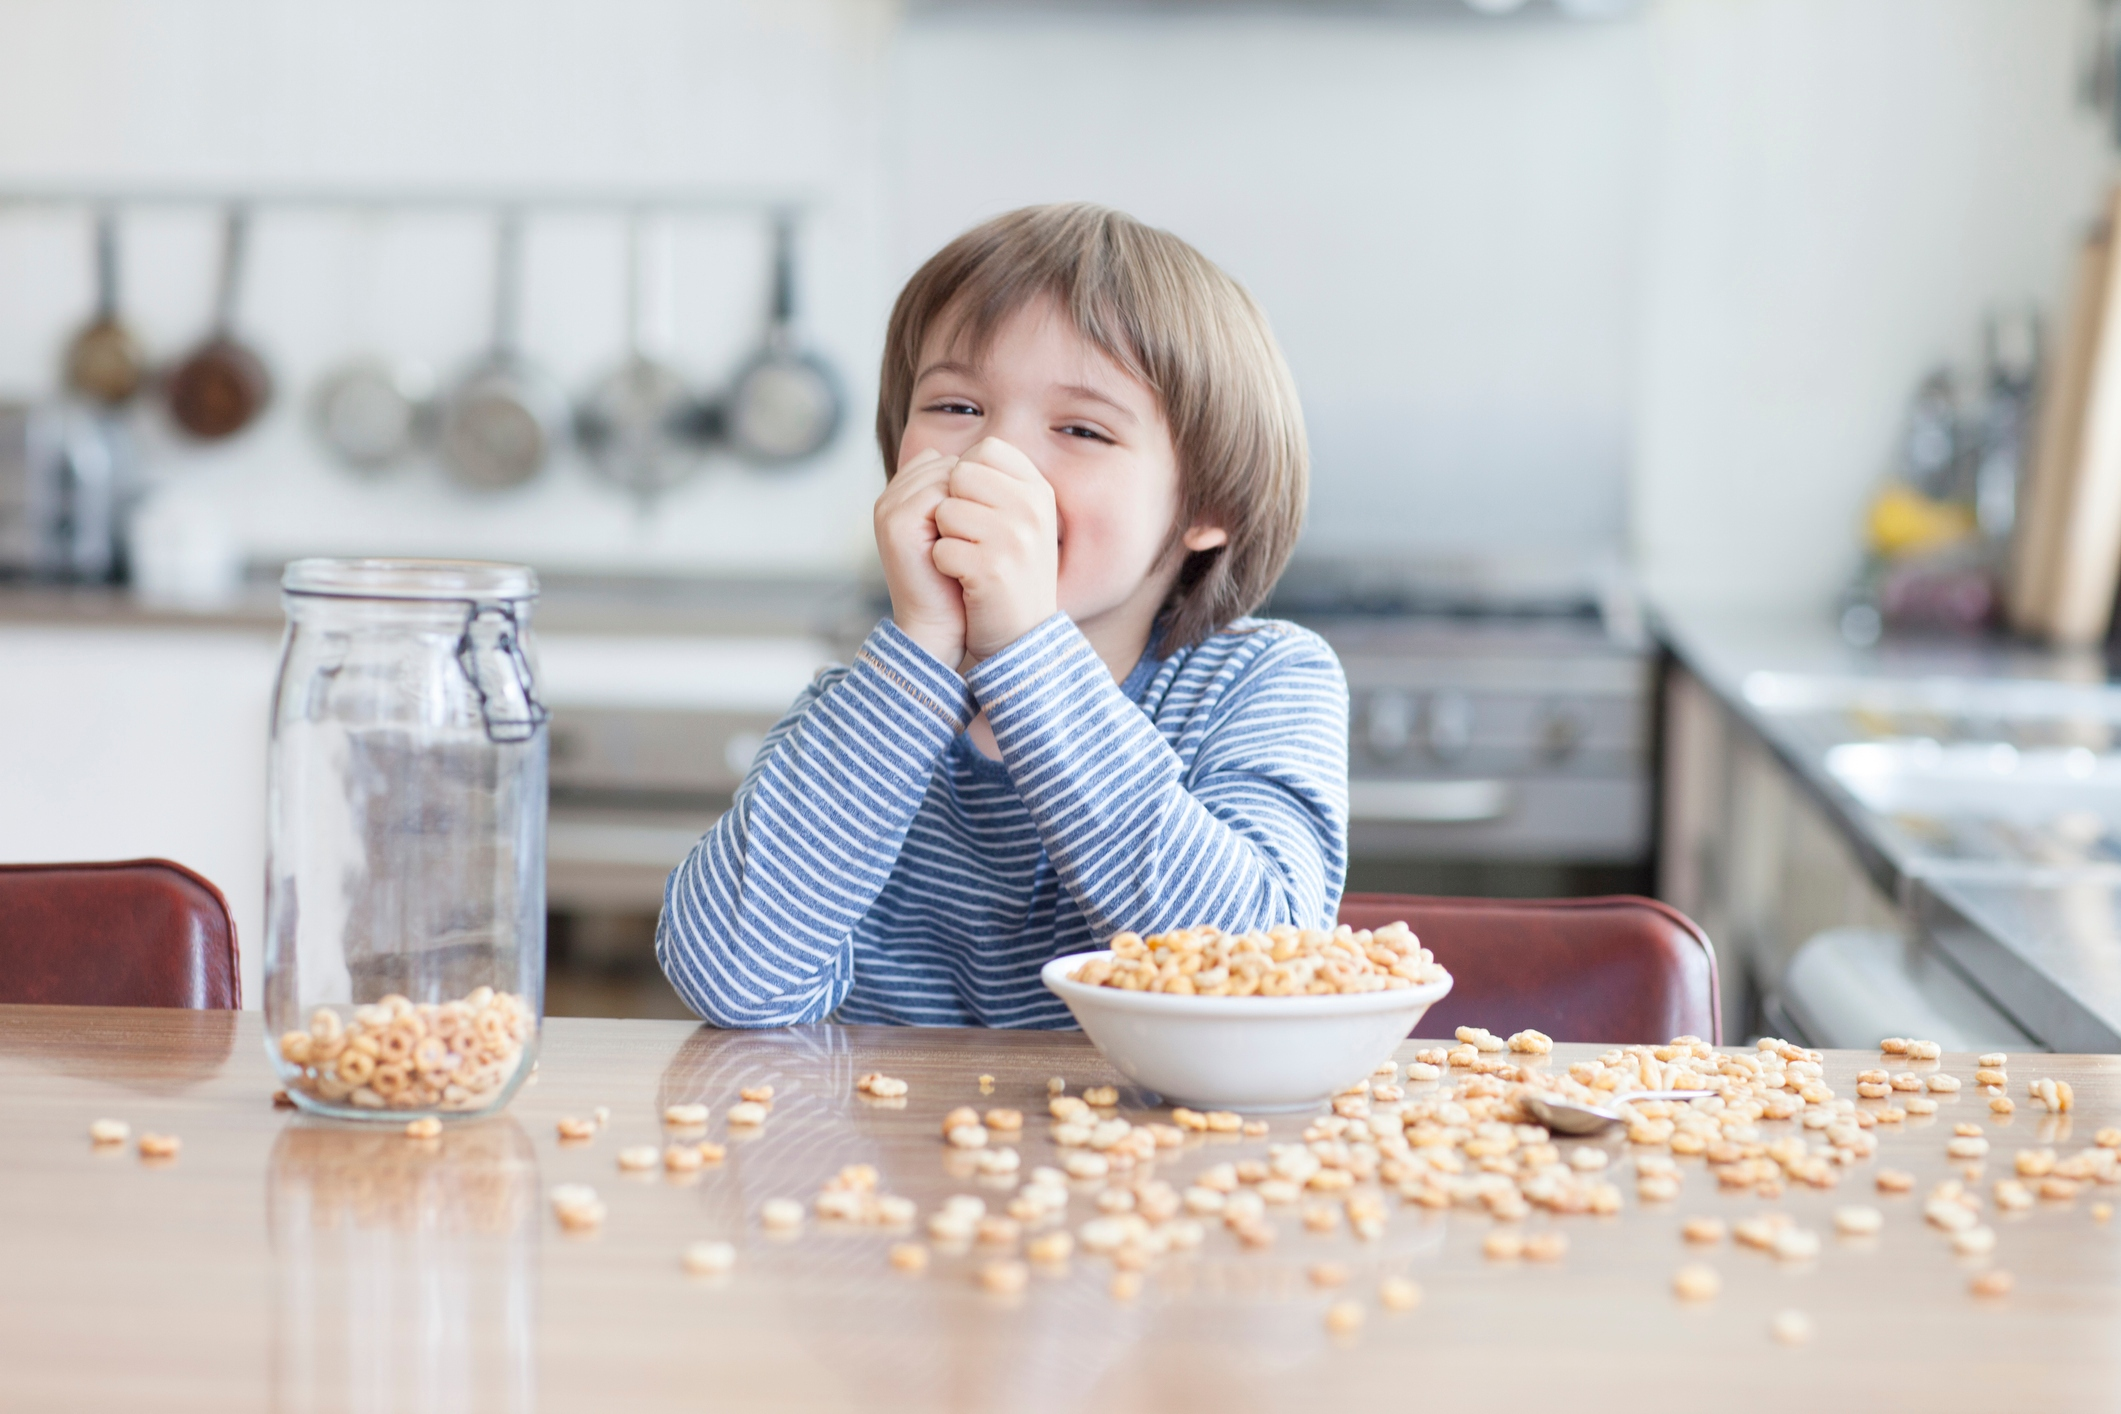 Studies show that little ones who engage and have fun with food using all their senses, are much more willing to try those foods